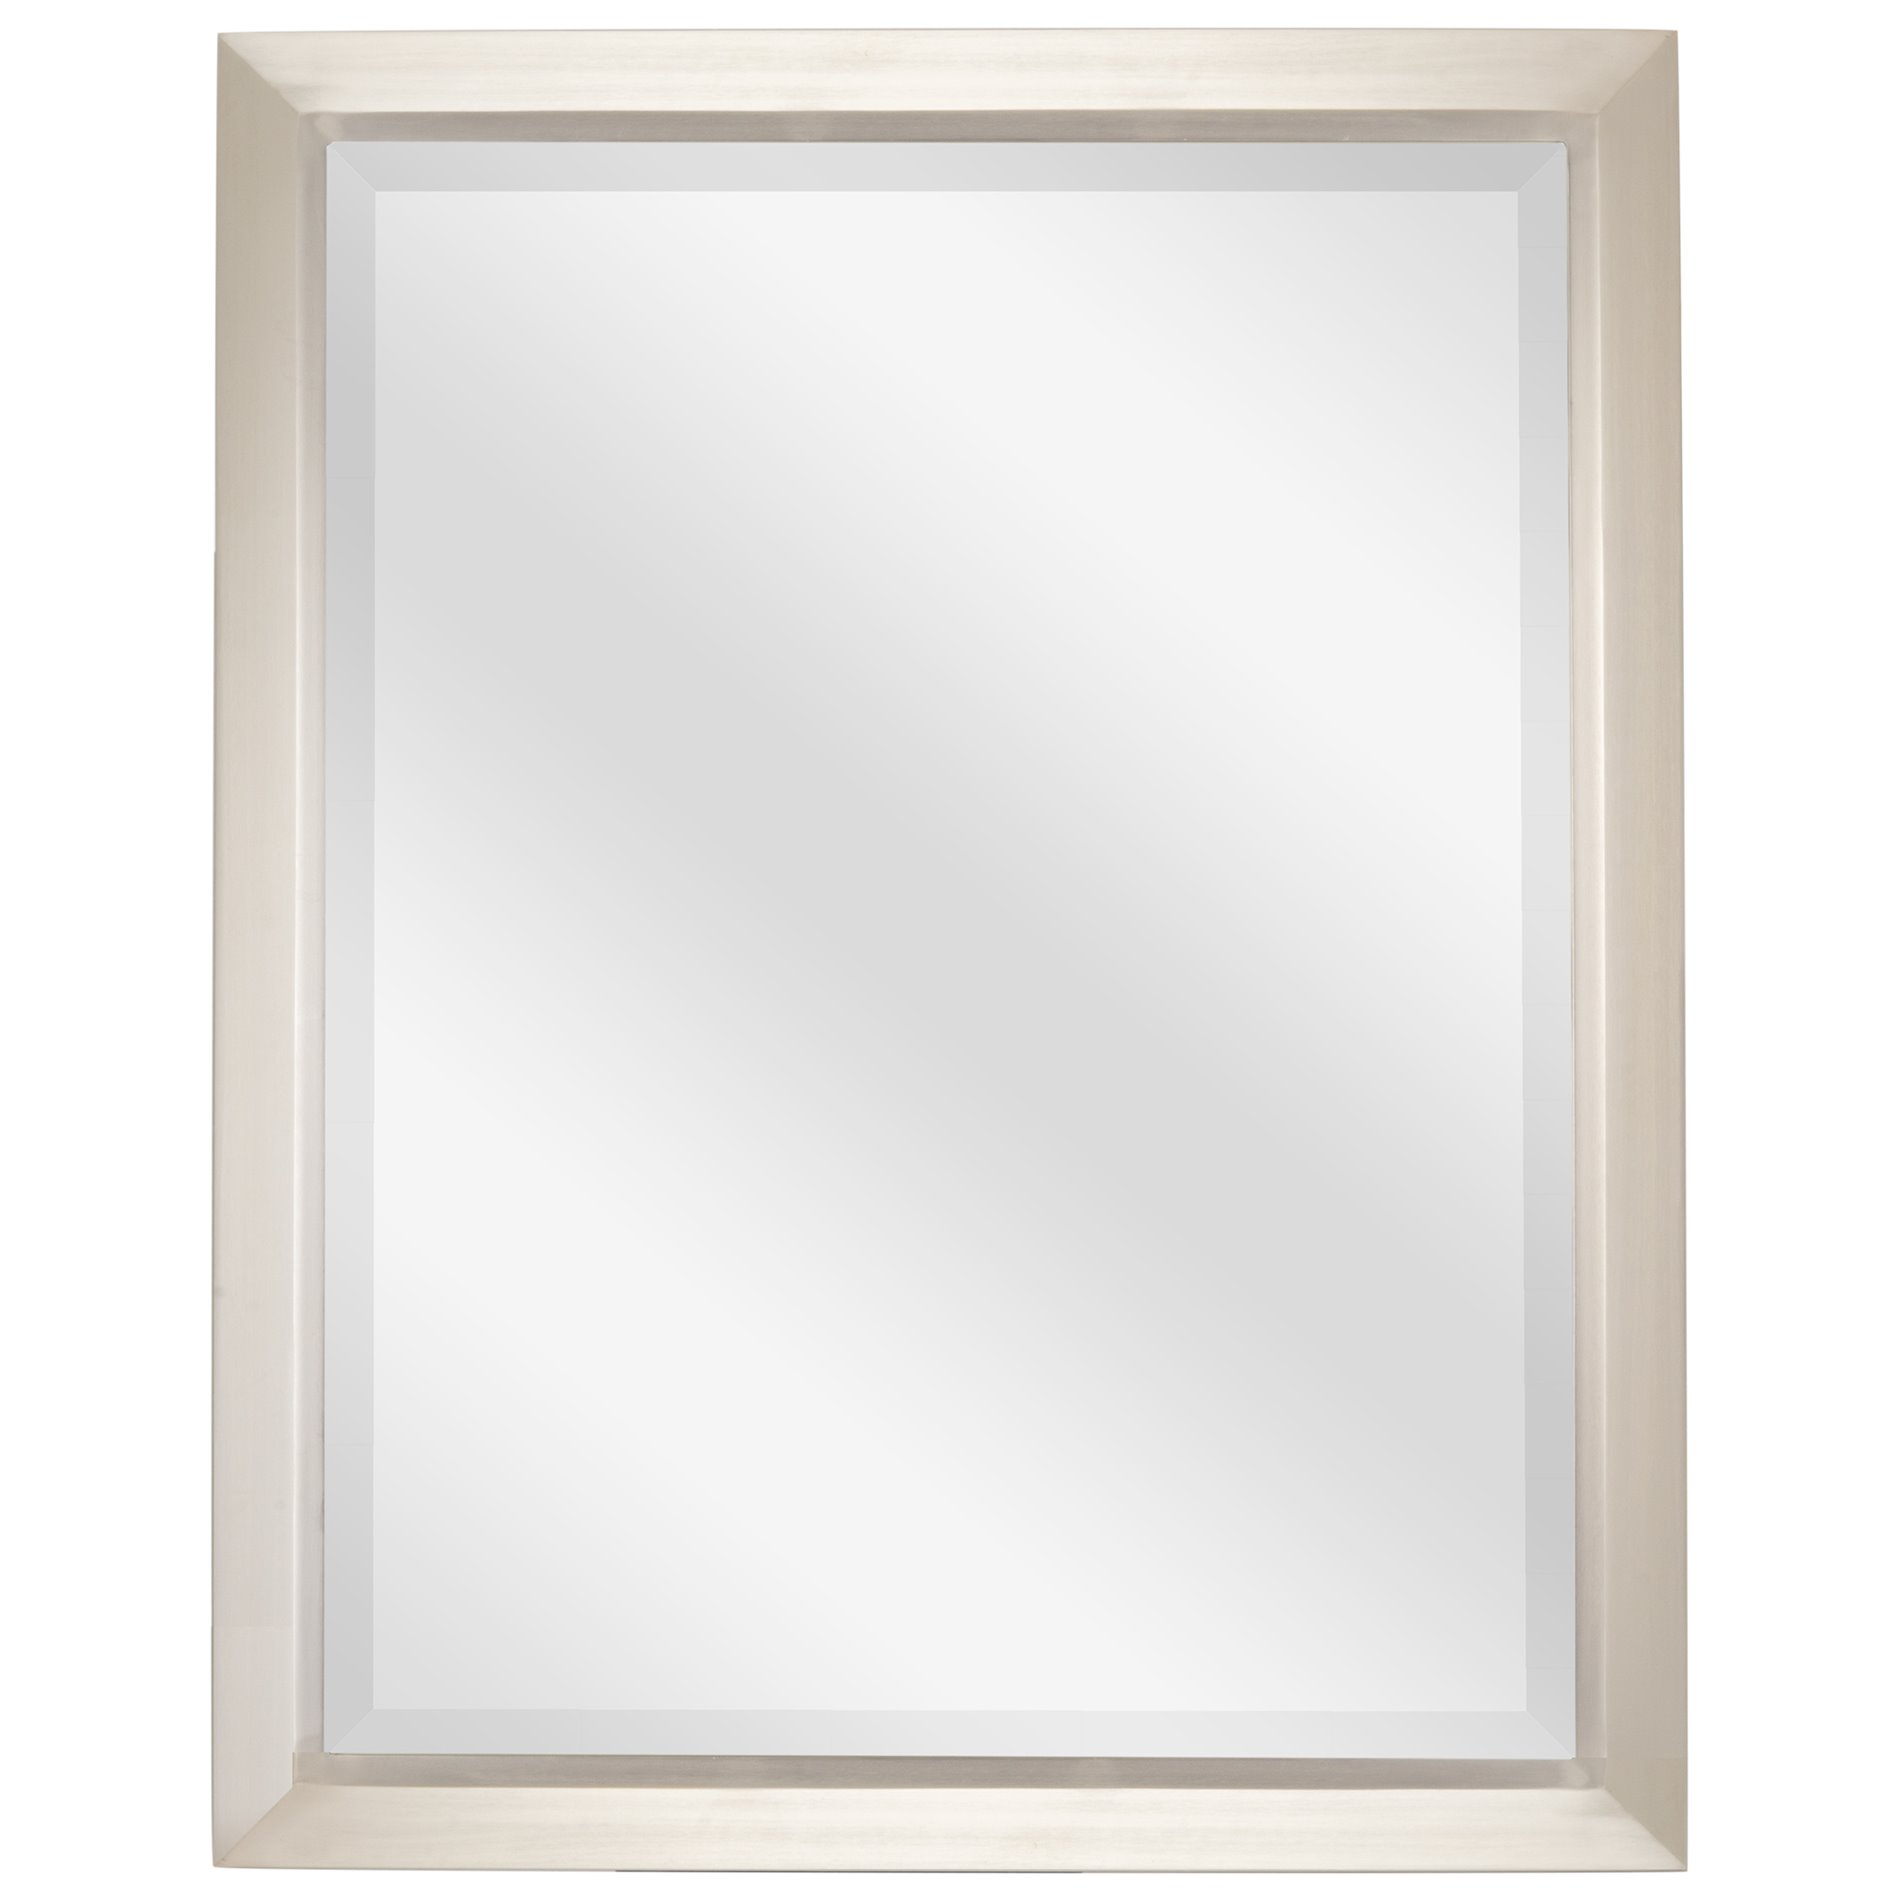 "Revel Madison 30""x 24"" Large Modern Rectangle Decorative beveled mirror + Brushed Nickel Finish"